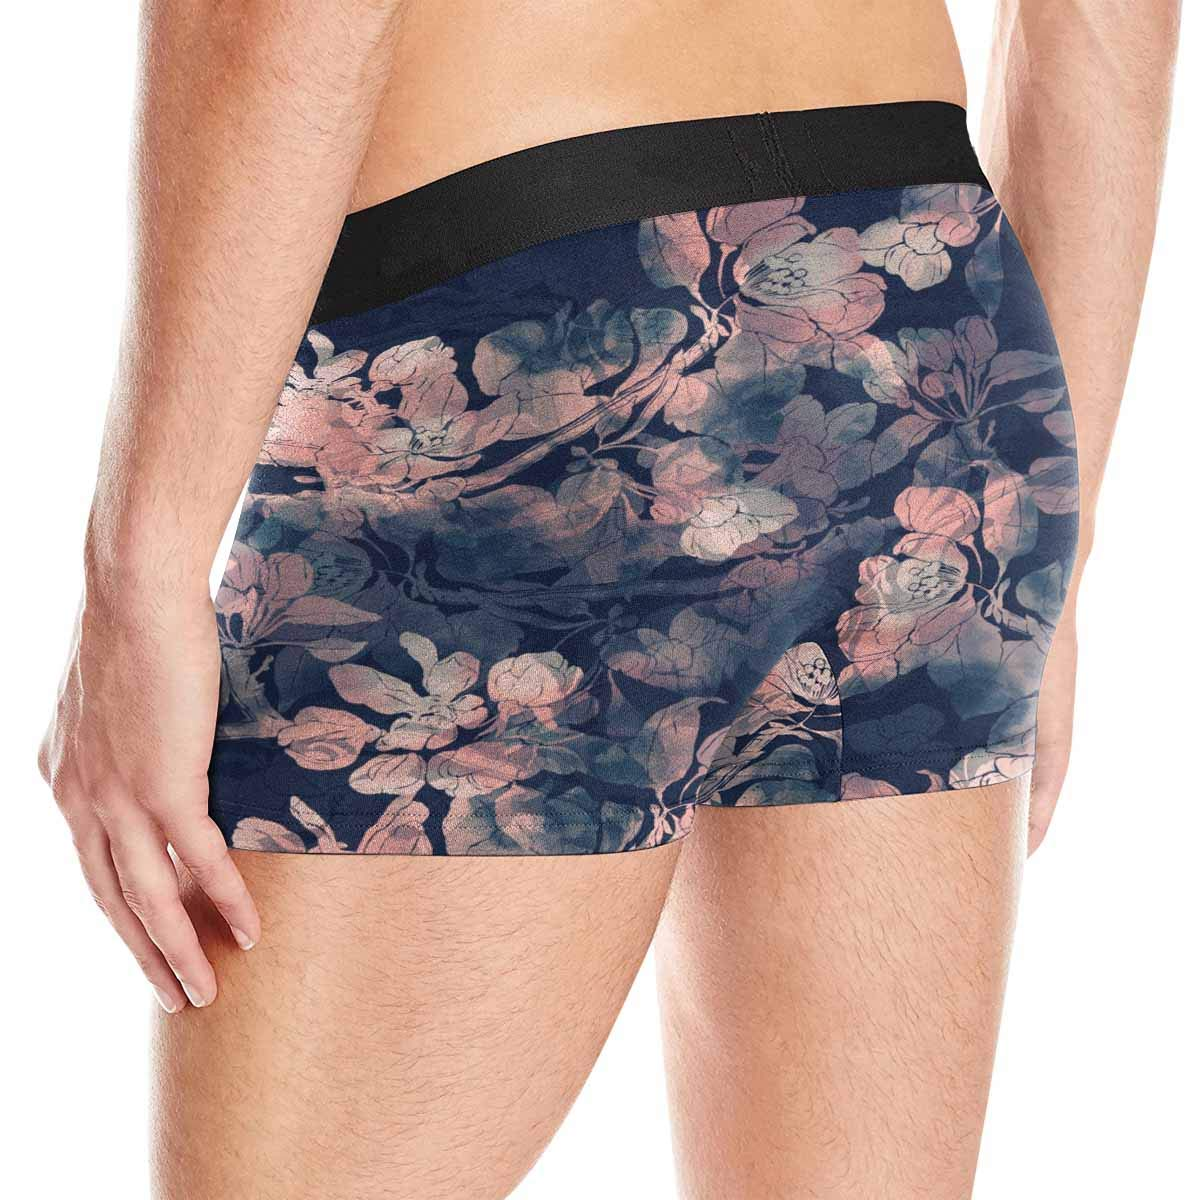 XS-3XL INTERESTPRINT Mens Boxer Briefs Underpants Imprints Sakura Blossoms